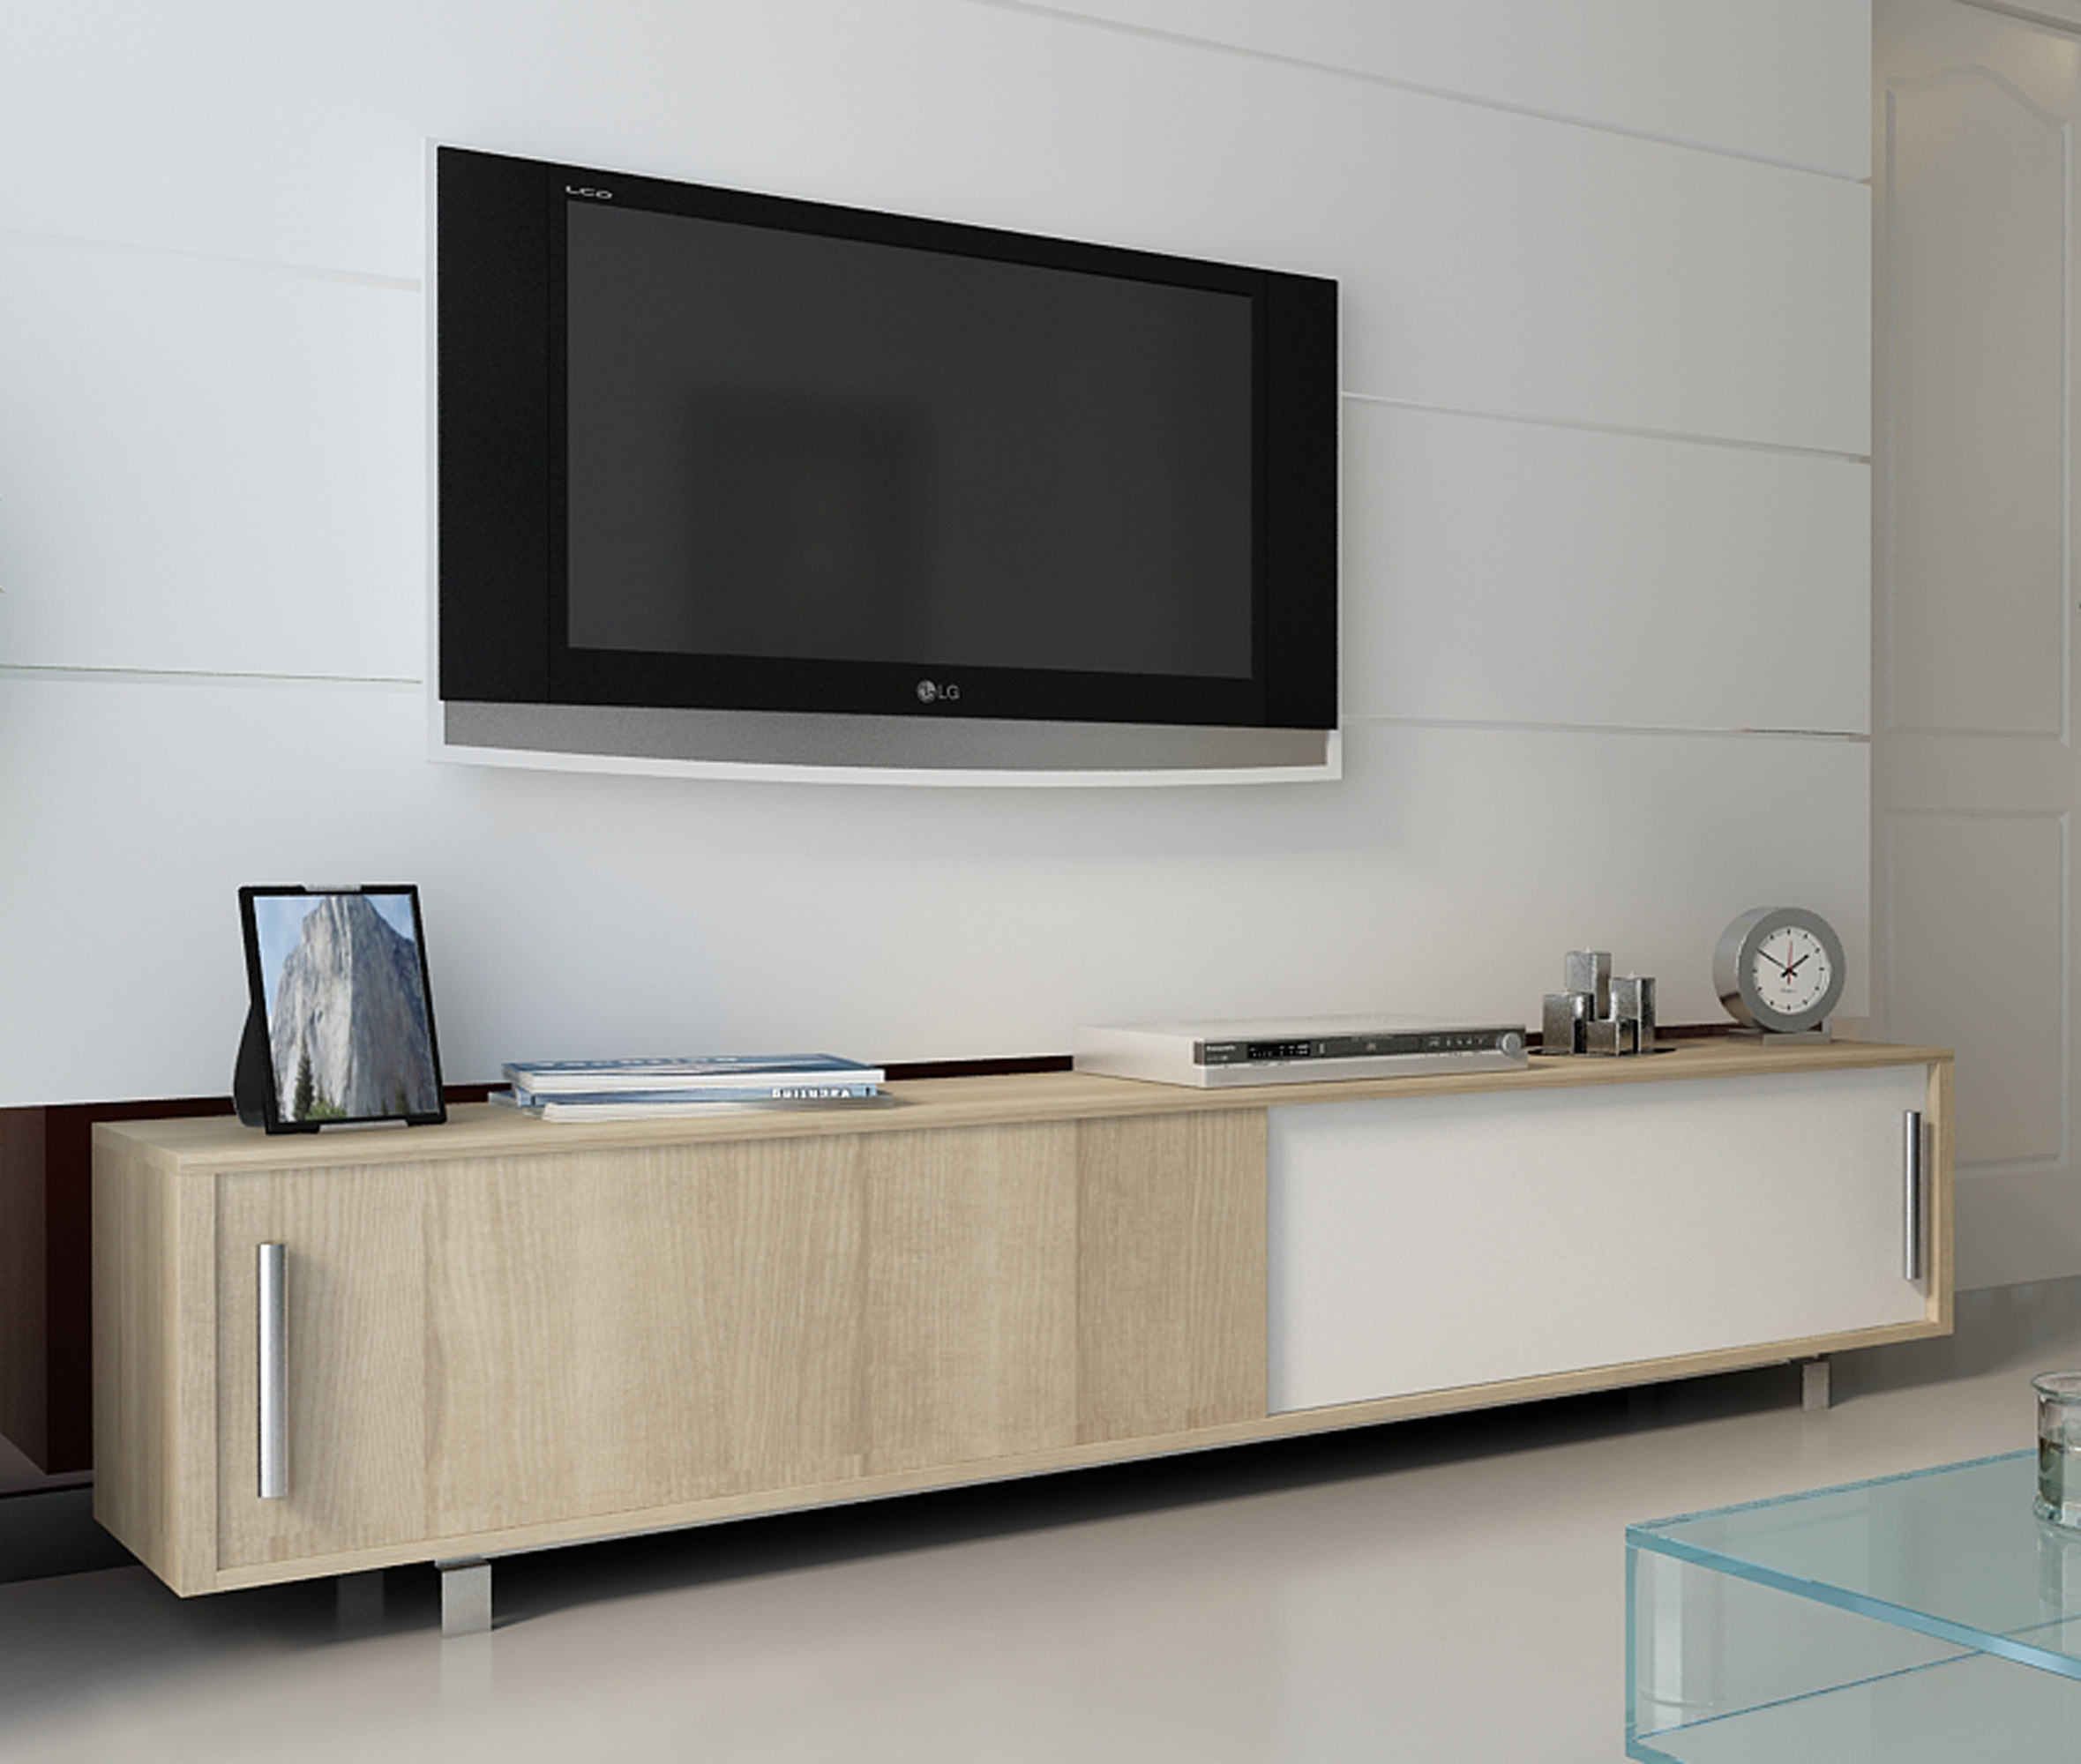 Turntable Tv Stands With Regard To Most Recent Modern Tv Stands & Entertainment Centers (View 14 of 20)